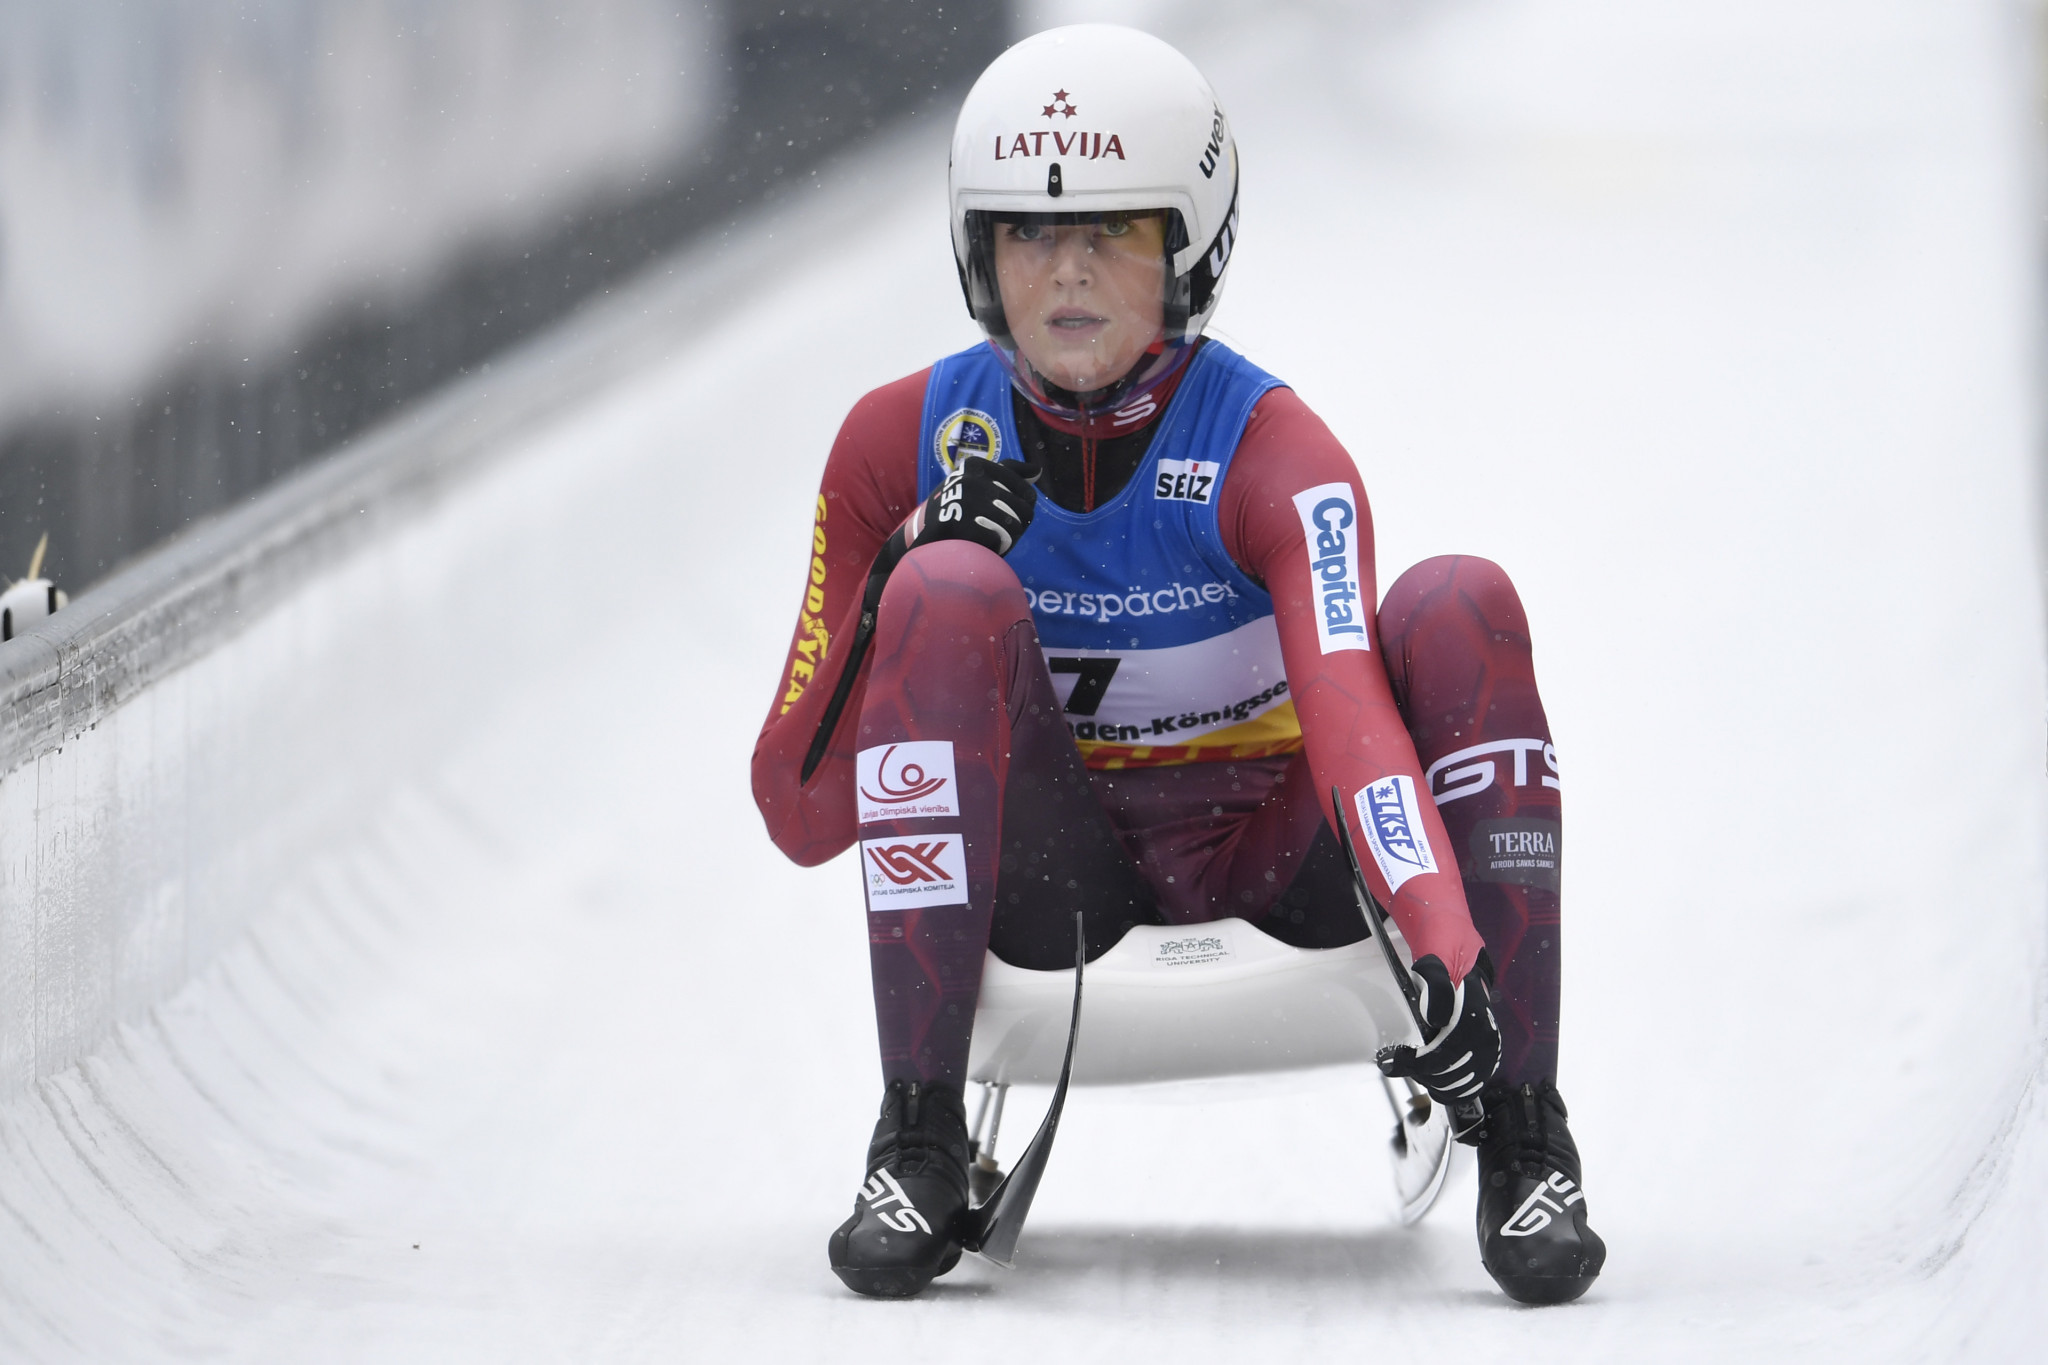 GTS is the equipment provider for Latvia's luge team ©FIL